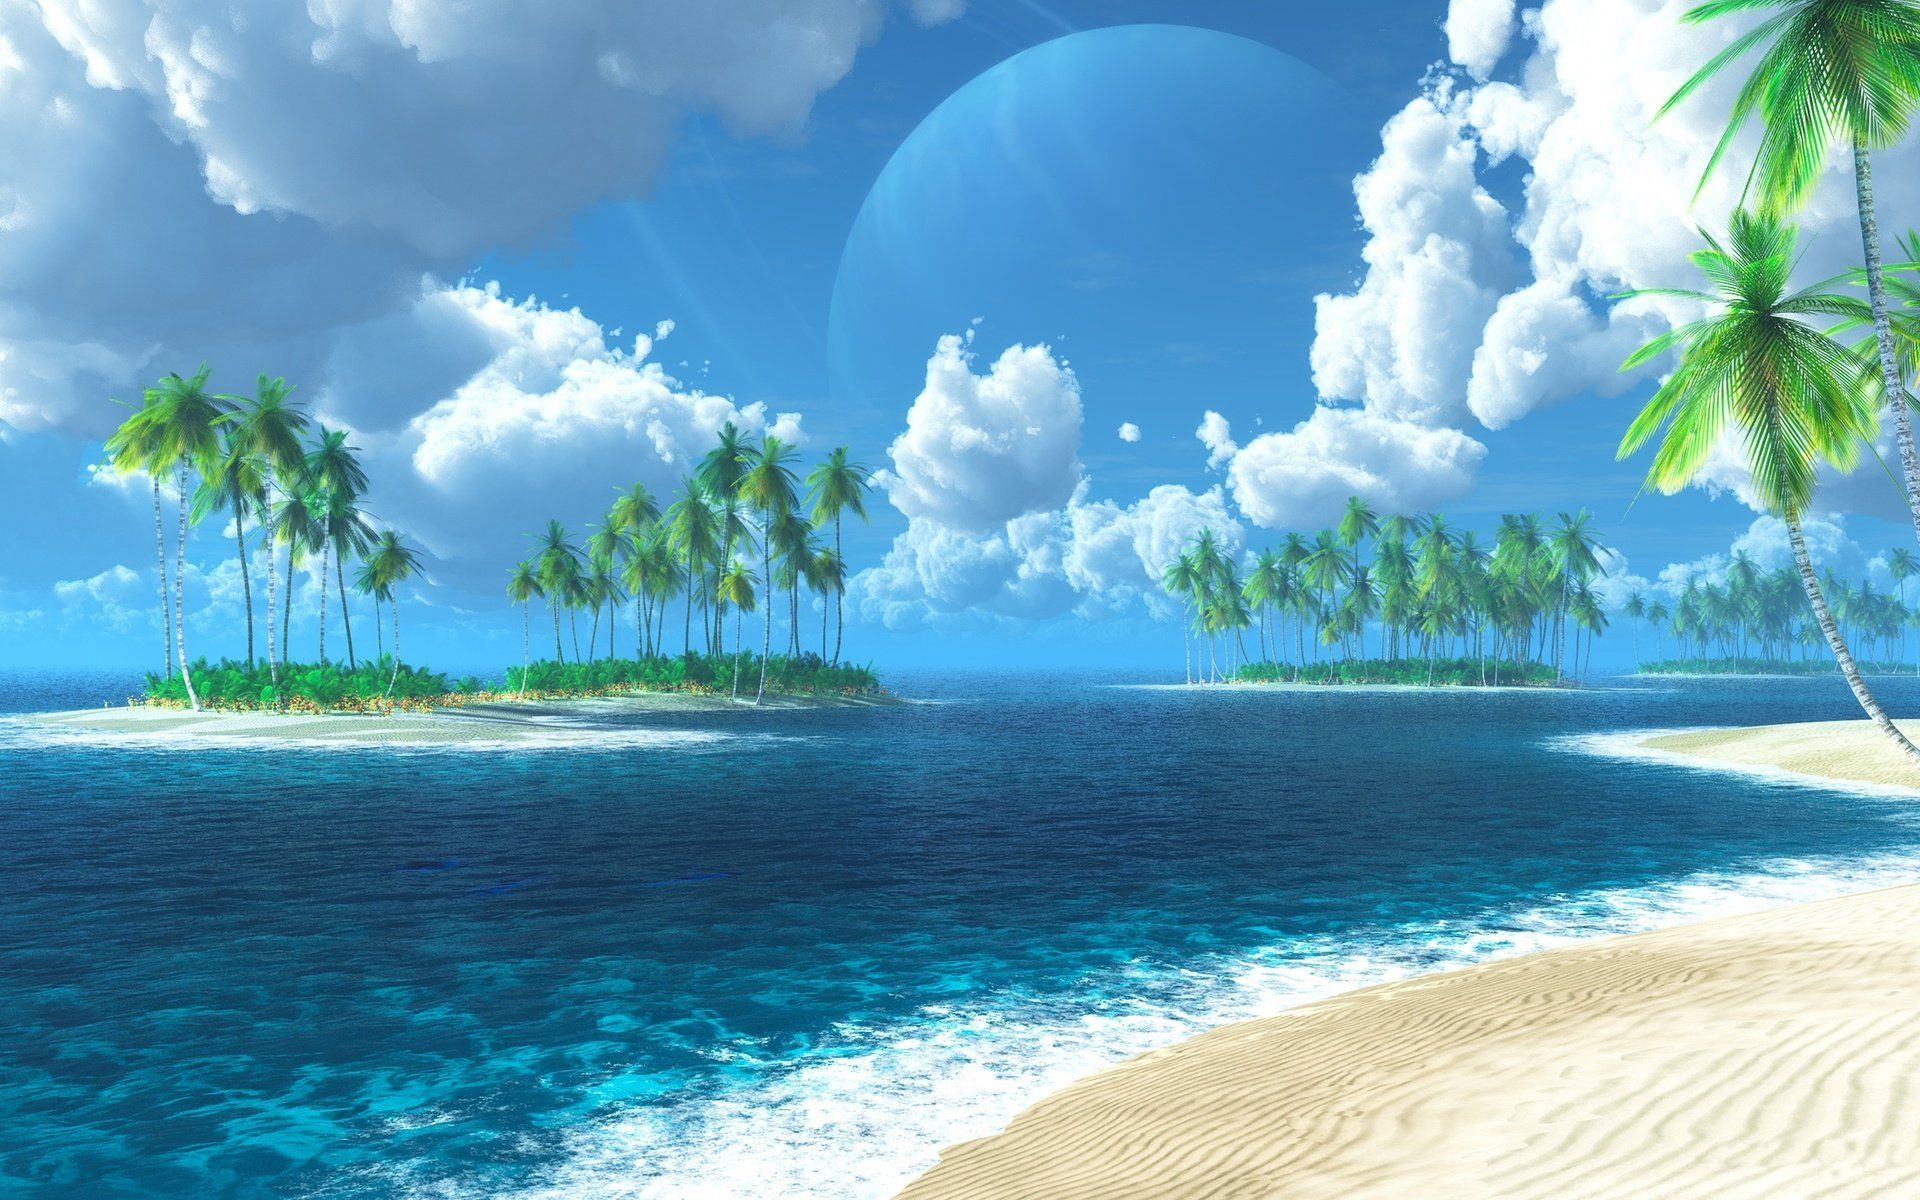 Adorable Peaceful Wallpapers 41 Wallpapers Bsnscb Beach Wallpaper Island Wallpaper Cloud Wallpaper